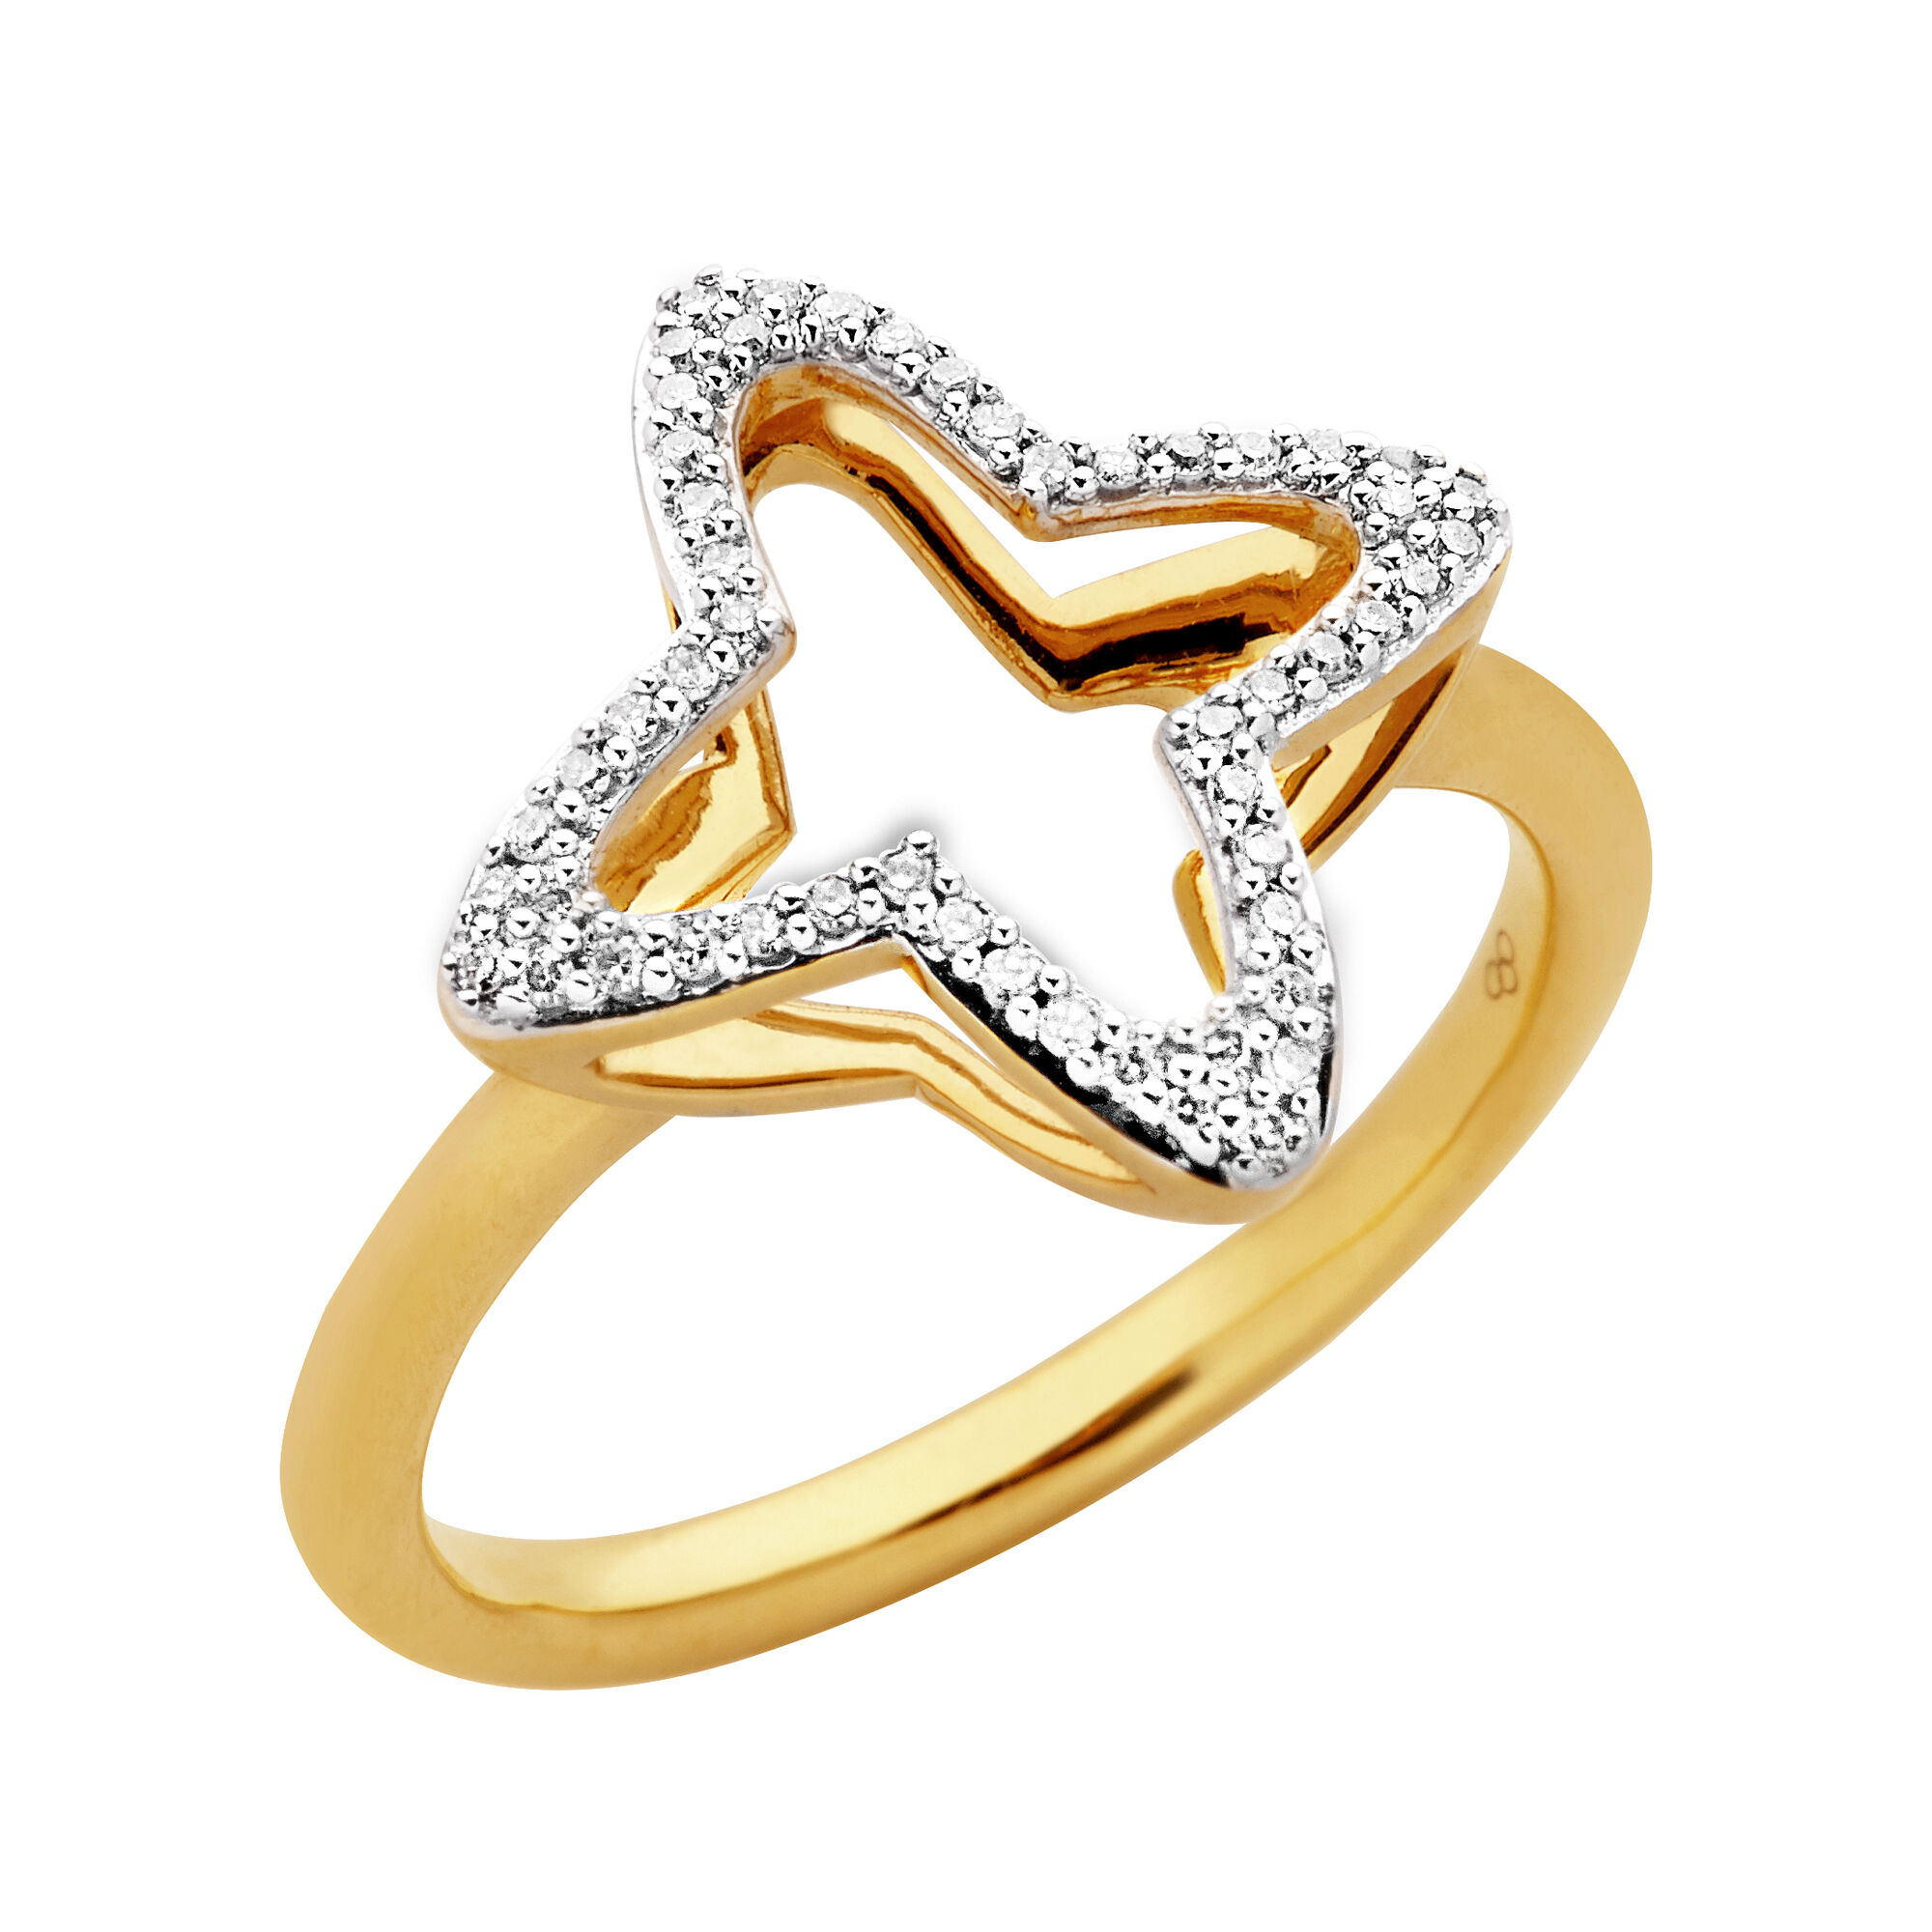 om gold pave diamond detail buy rings women design jewellery product for